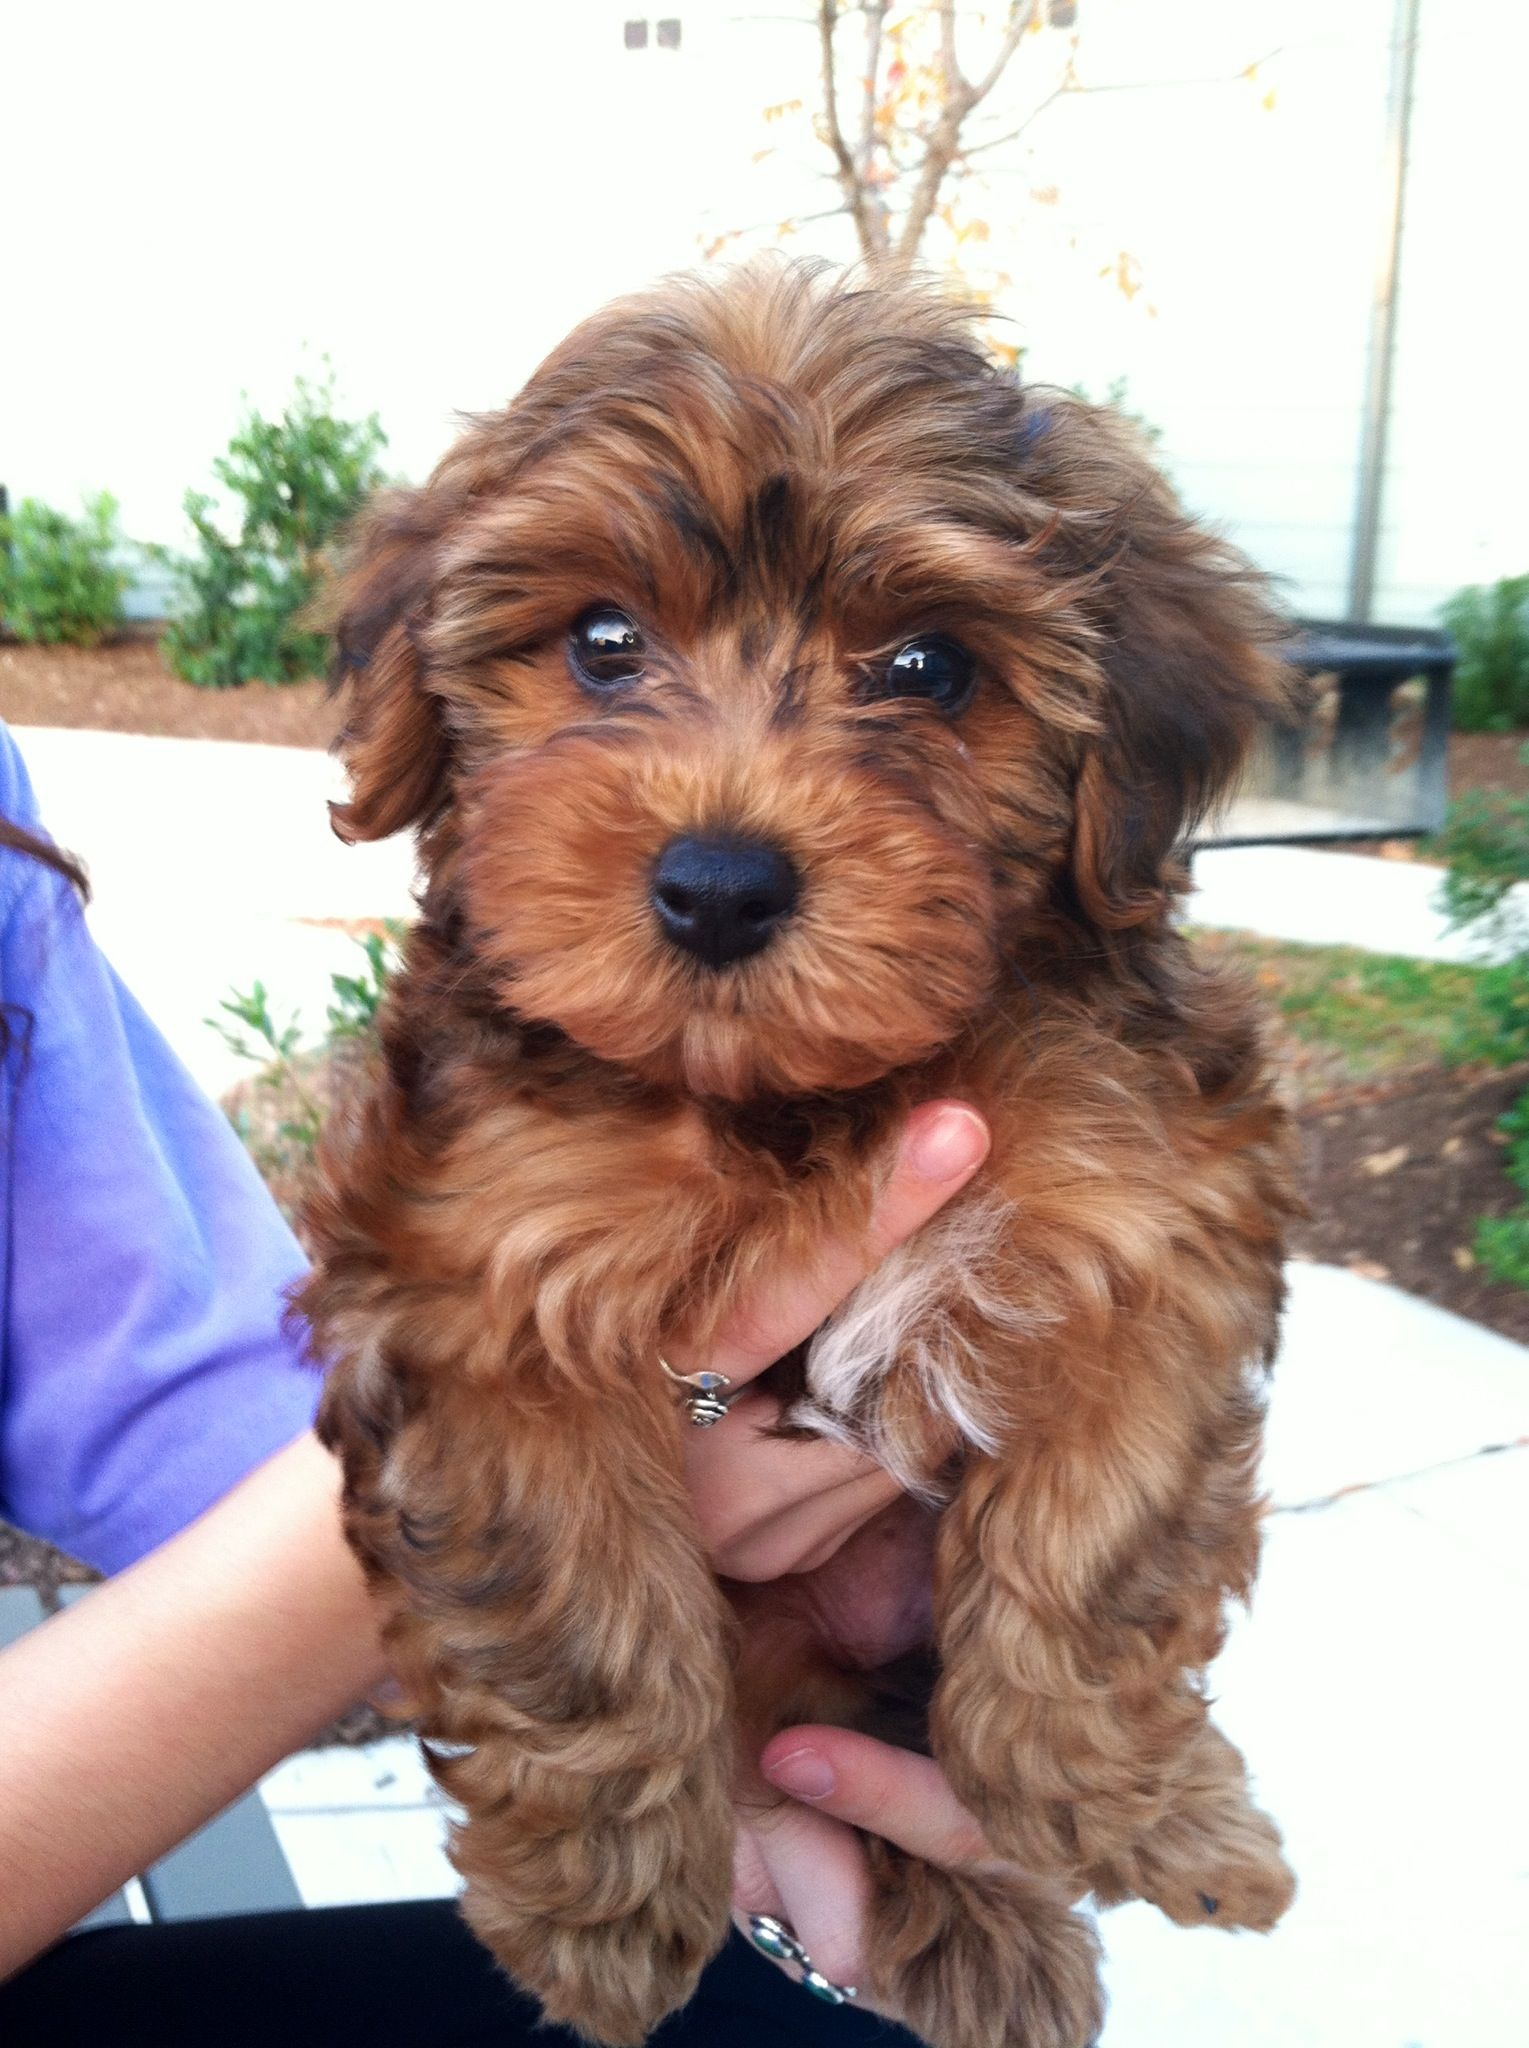 Nice Adult yorkie poo picture are not